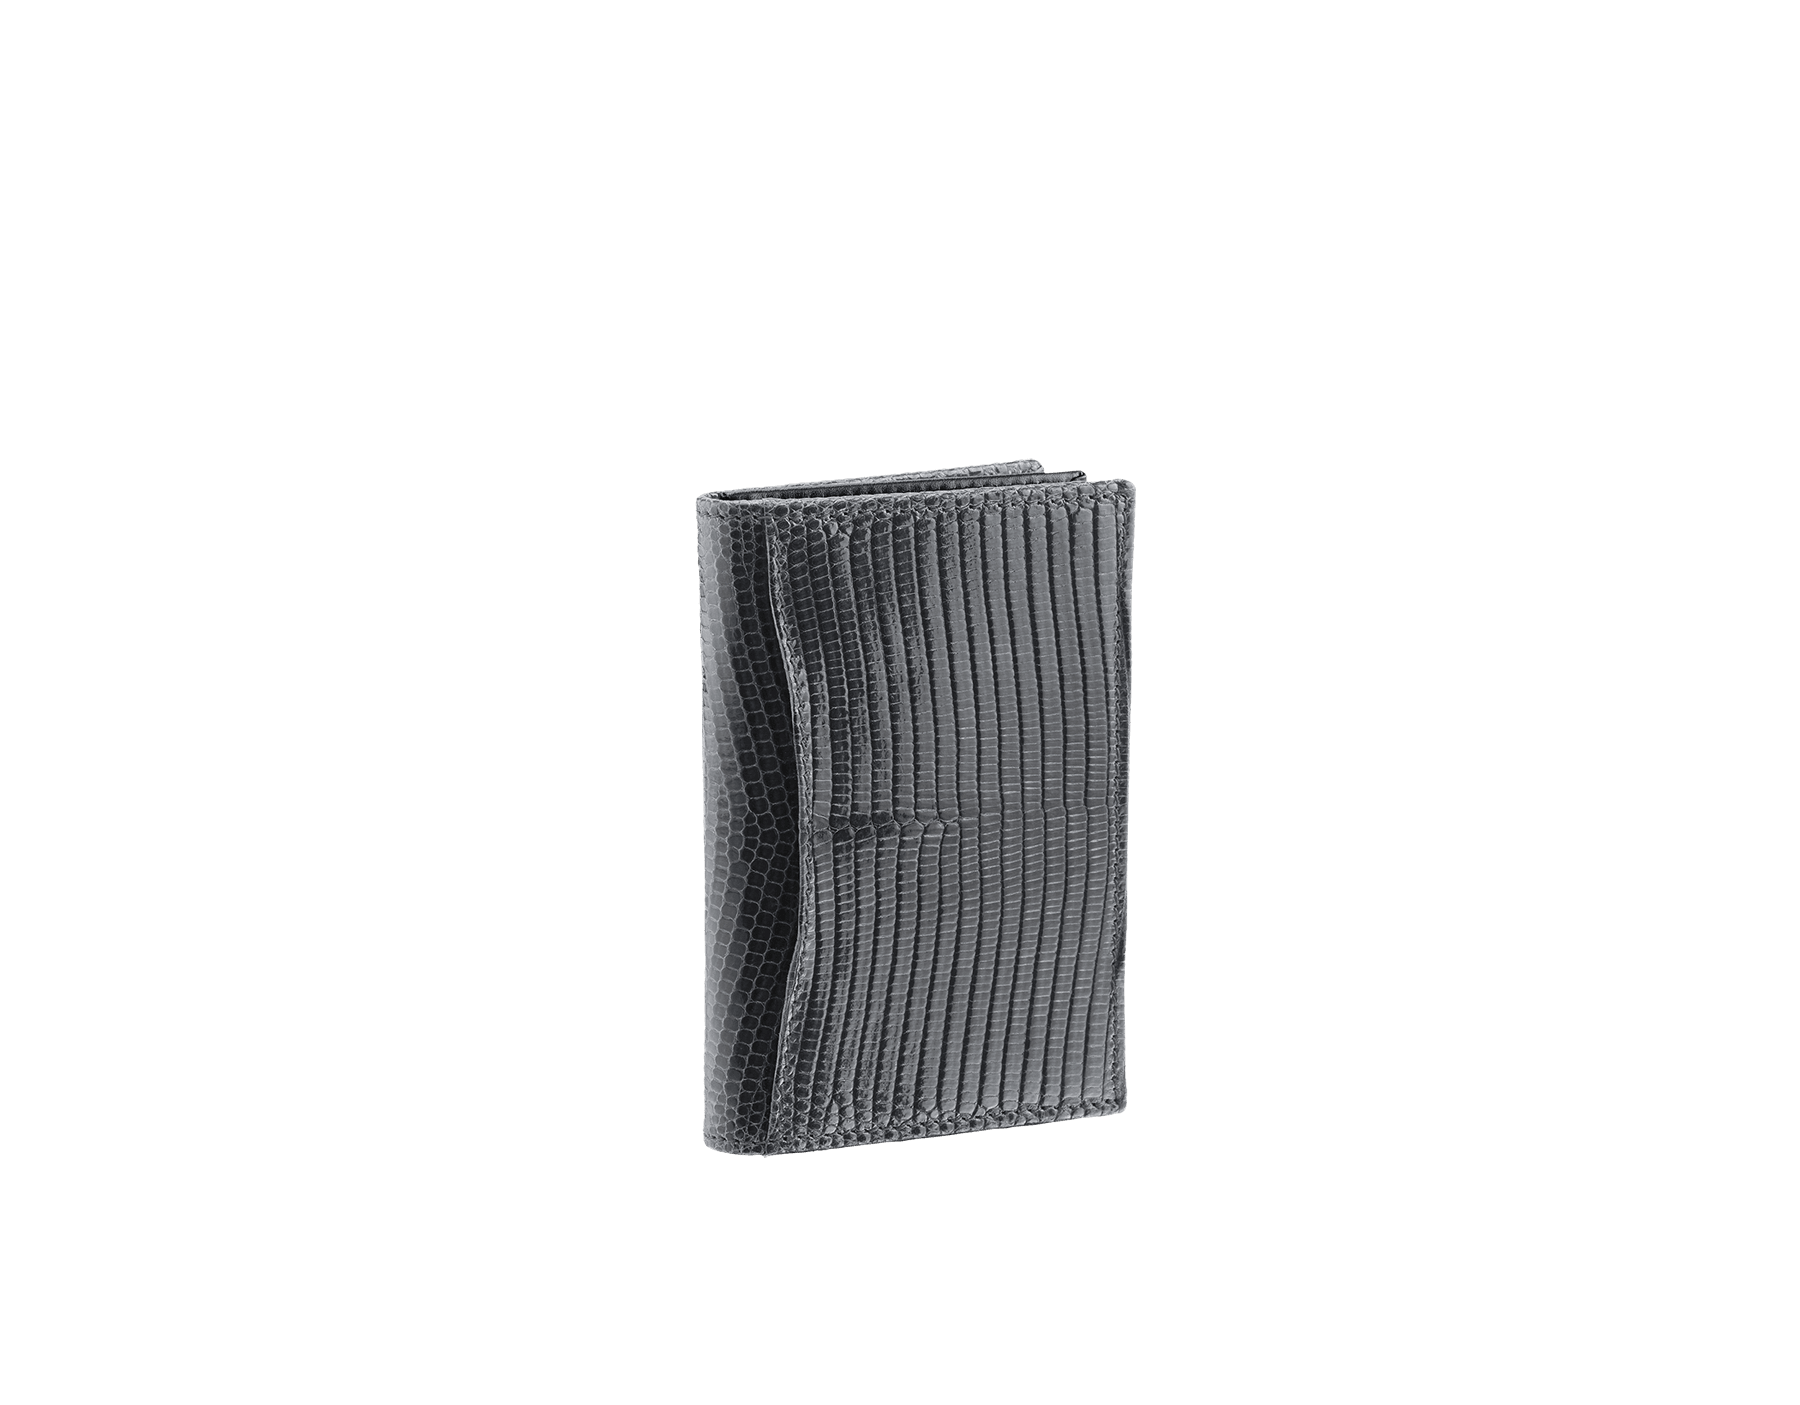 """BVLGARI BVLGARI"" business-card holder in shiny Charcoal Diamond grey lizard skin and black calfskin. Palladium-plated brass embellishment with logo. BBM-BC-HOLD-SIMPLE-sl image 3"